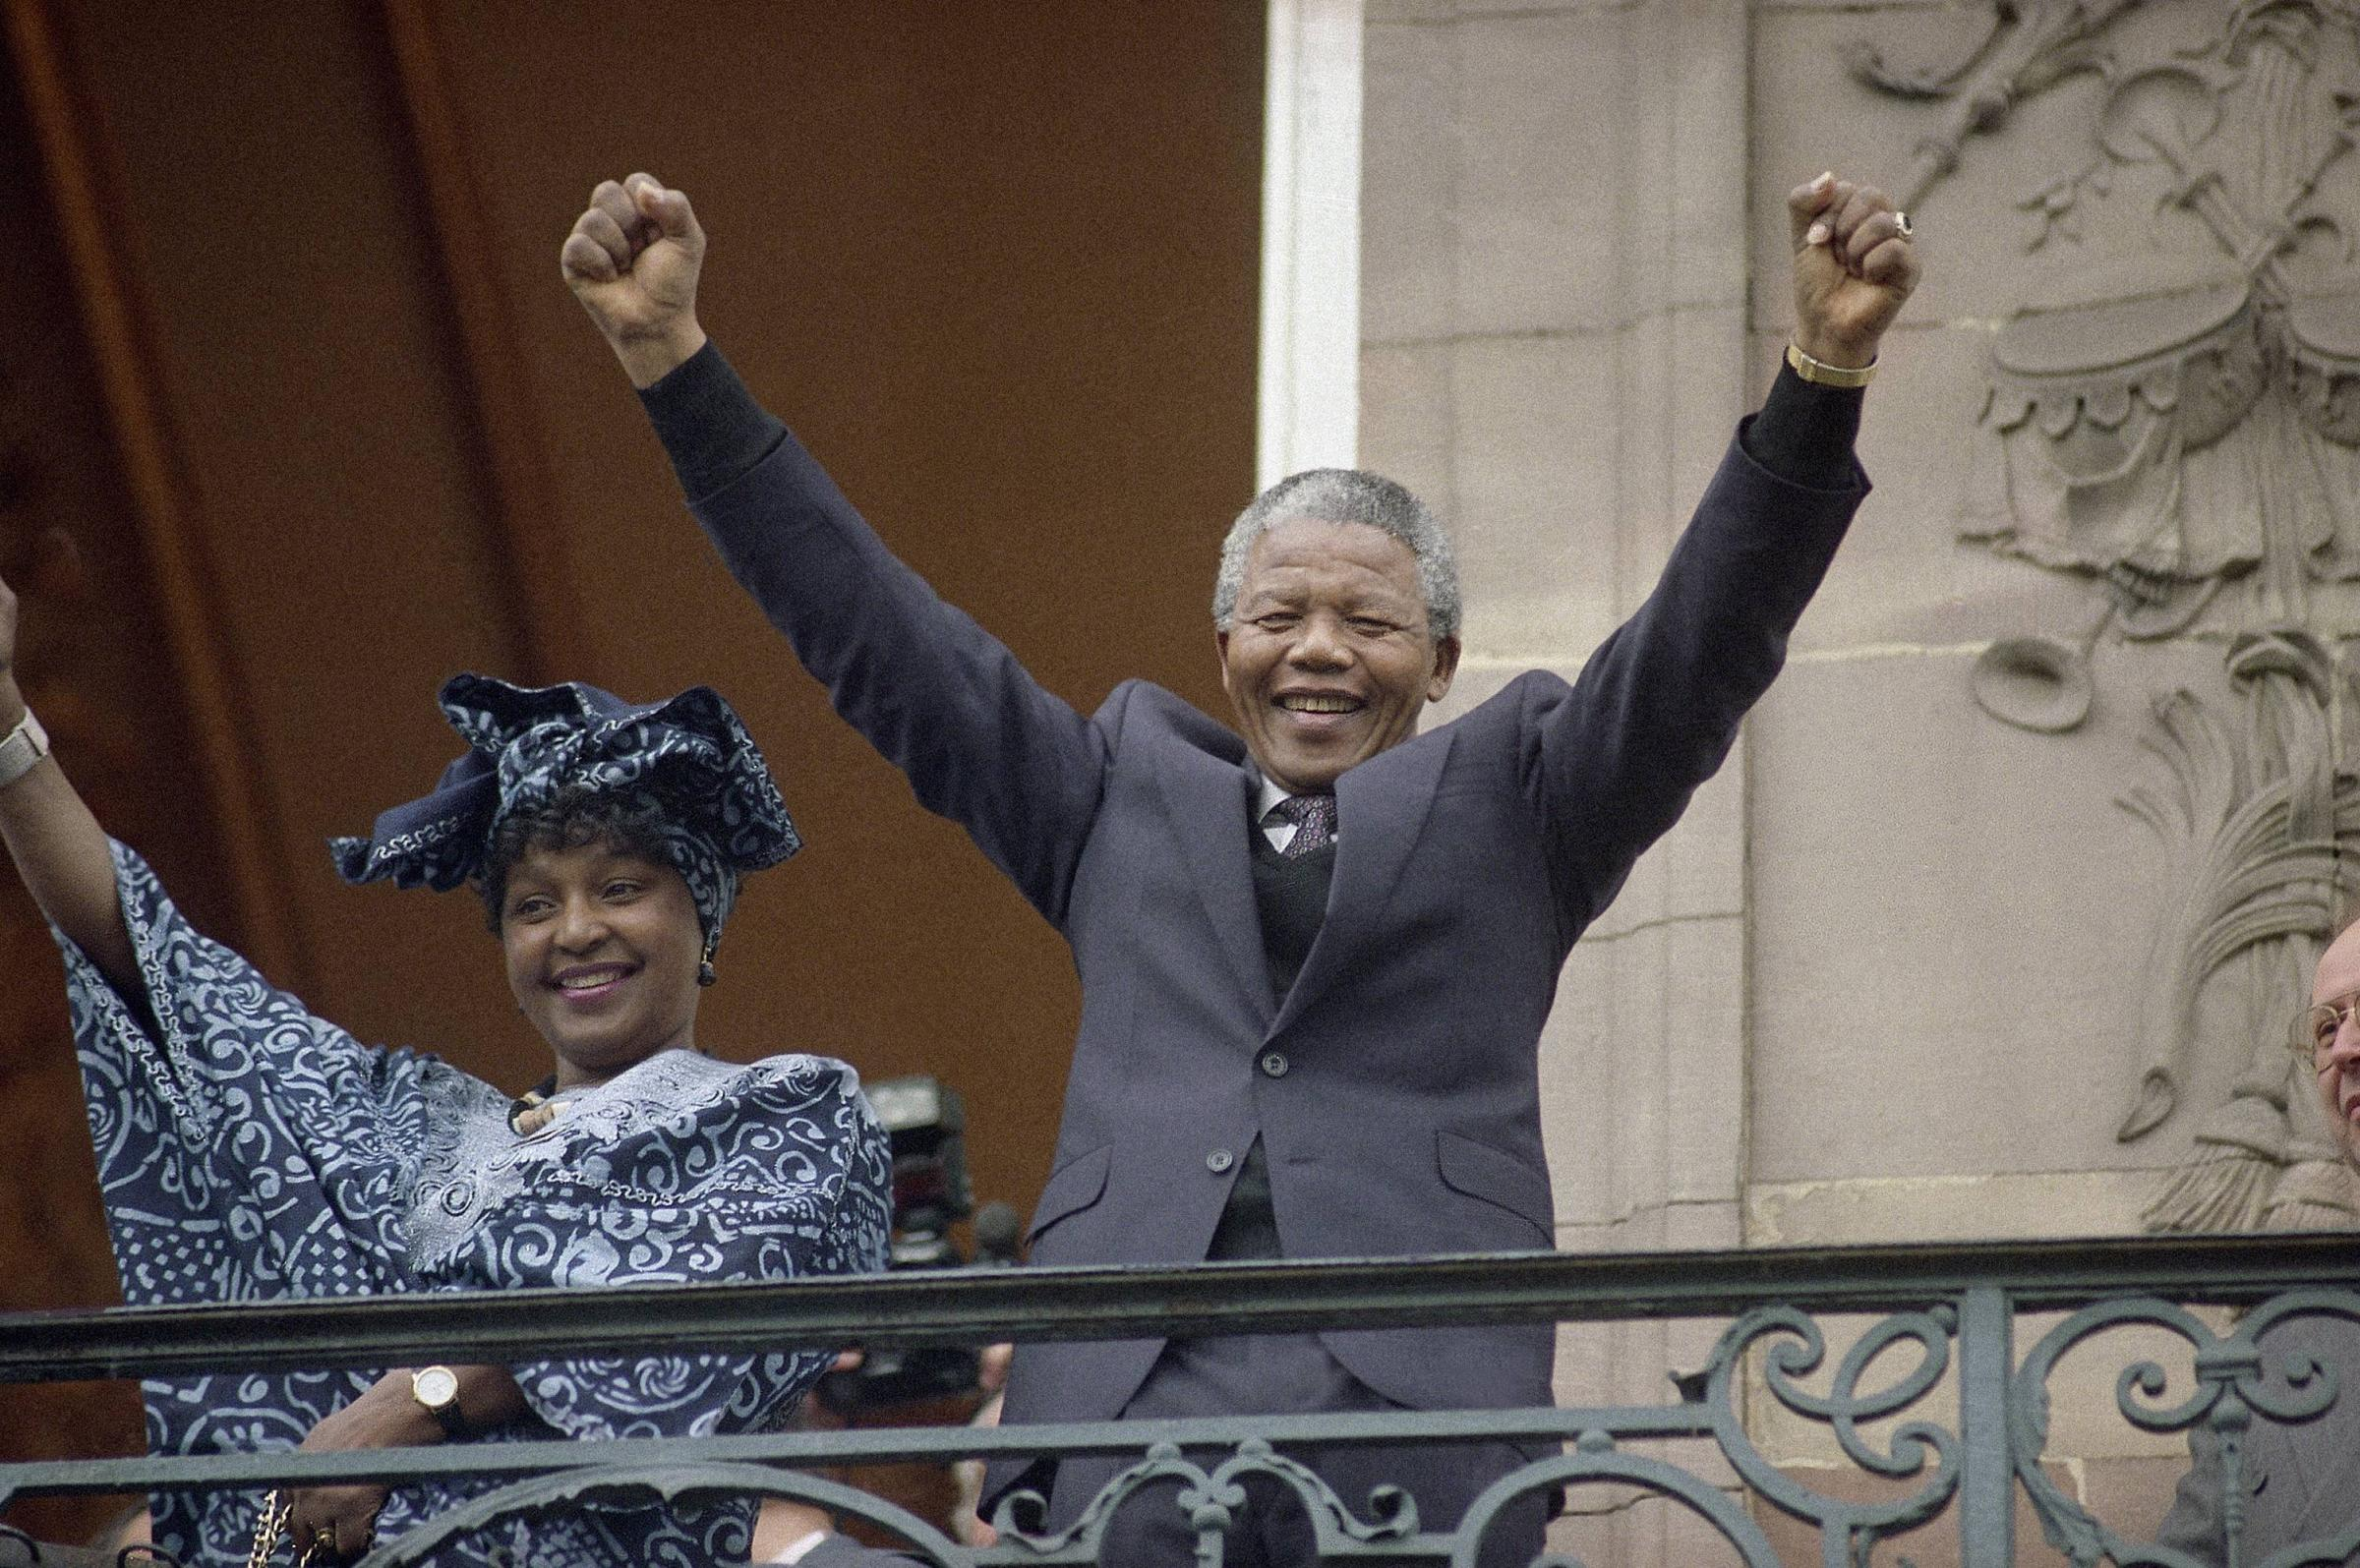 the legacy of nelson mandela essay The passing of madiba has touched a core of being human and being a leader,  and his legacy will linger in our midst for centuries to come.